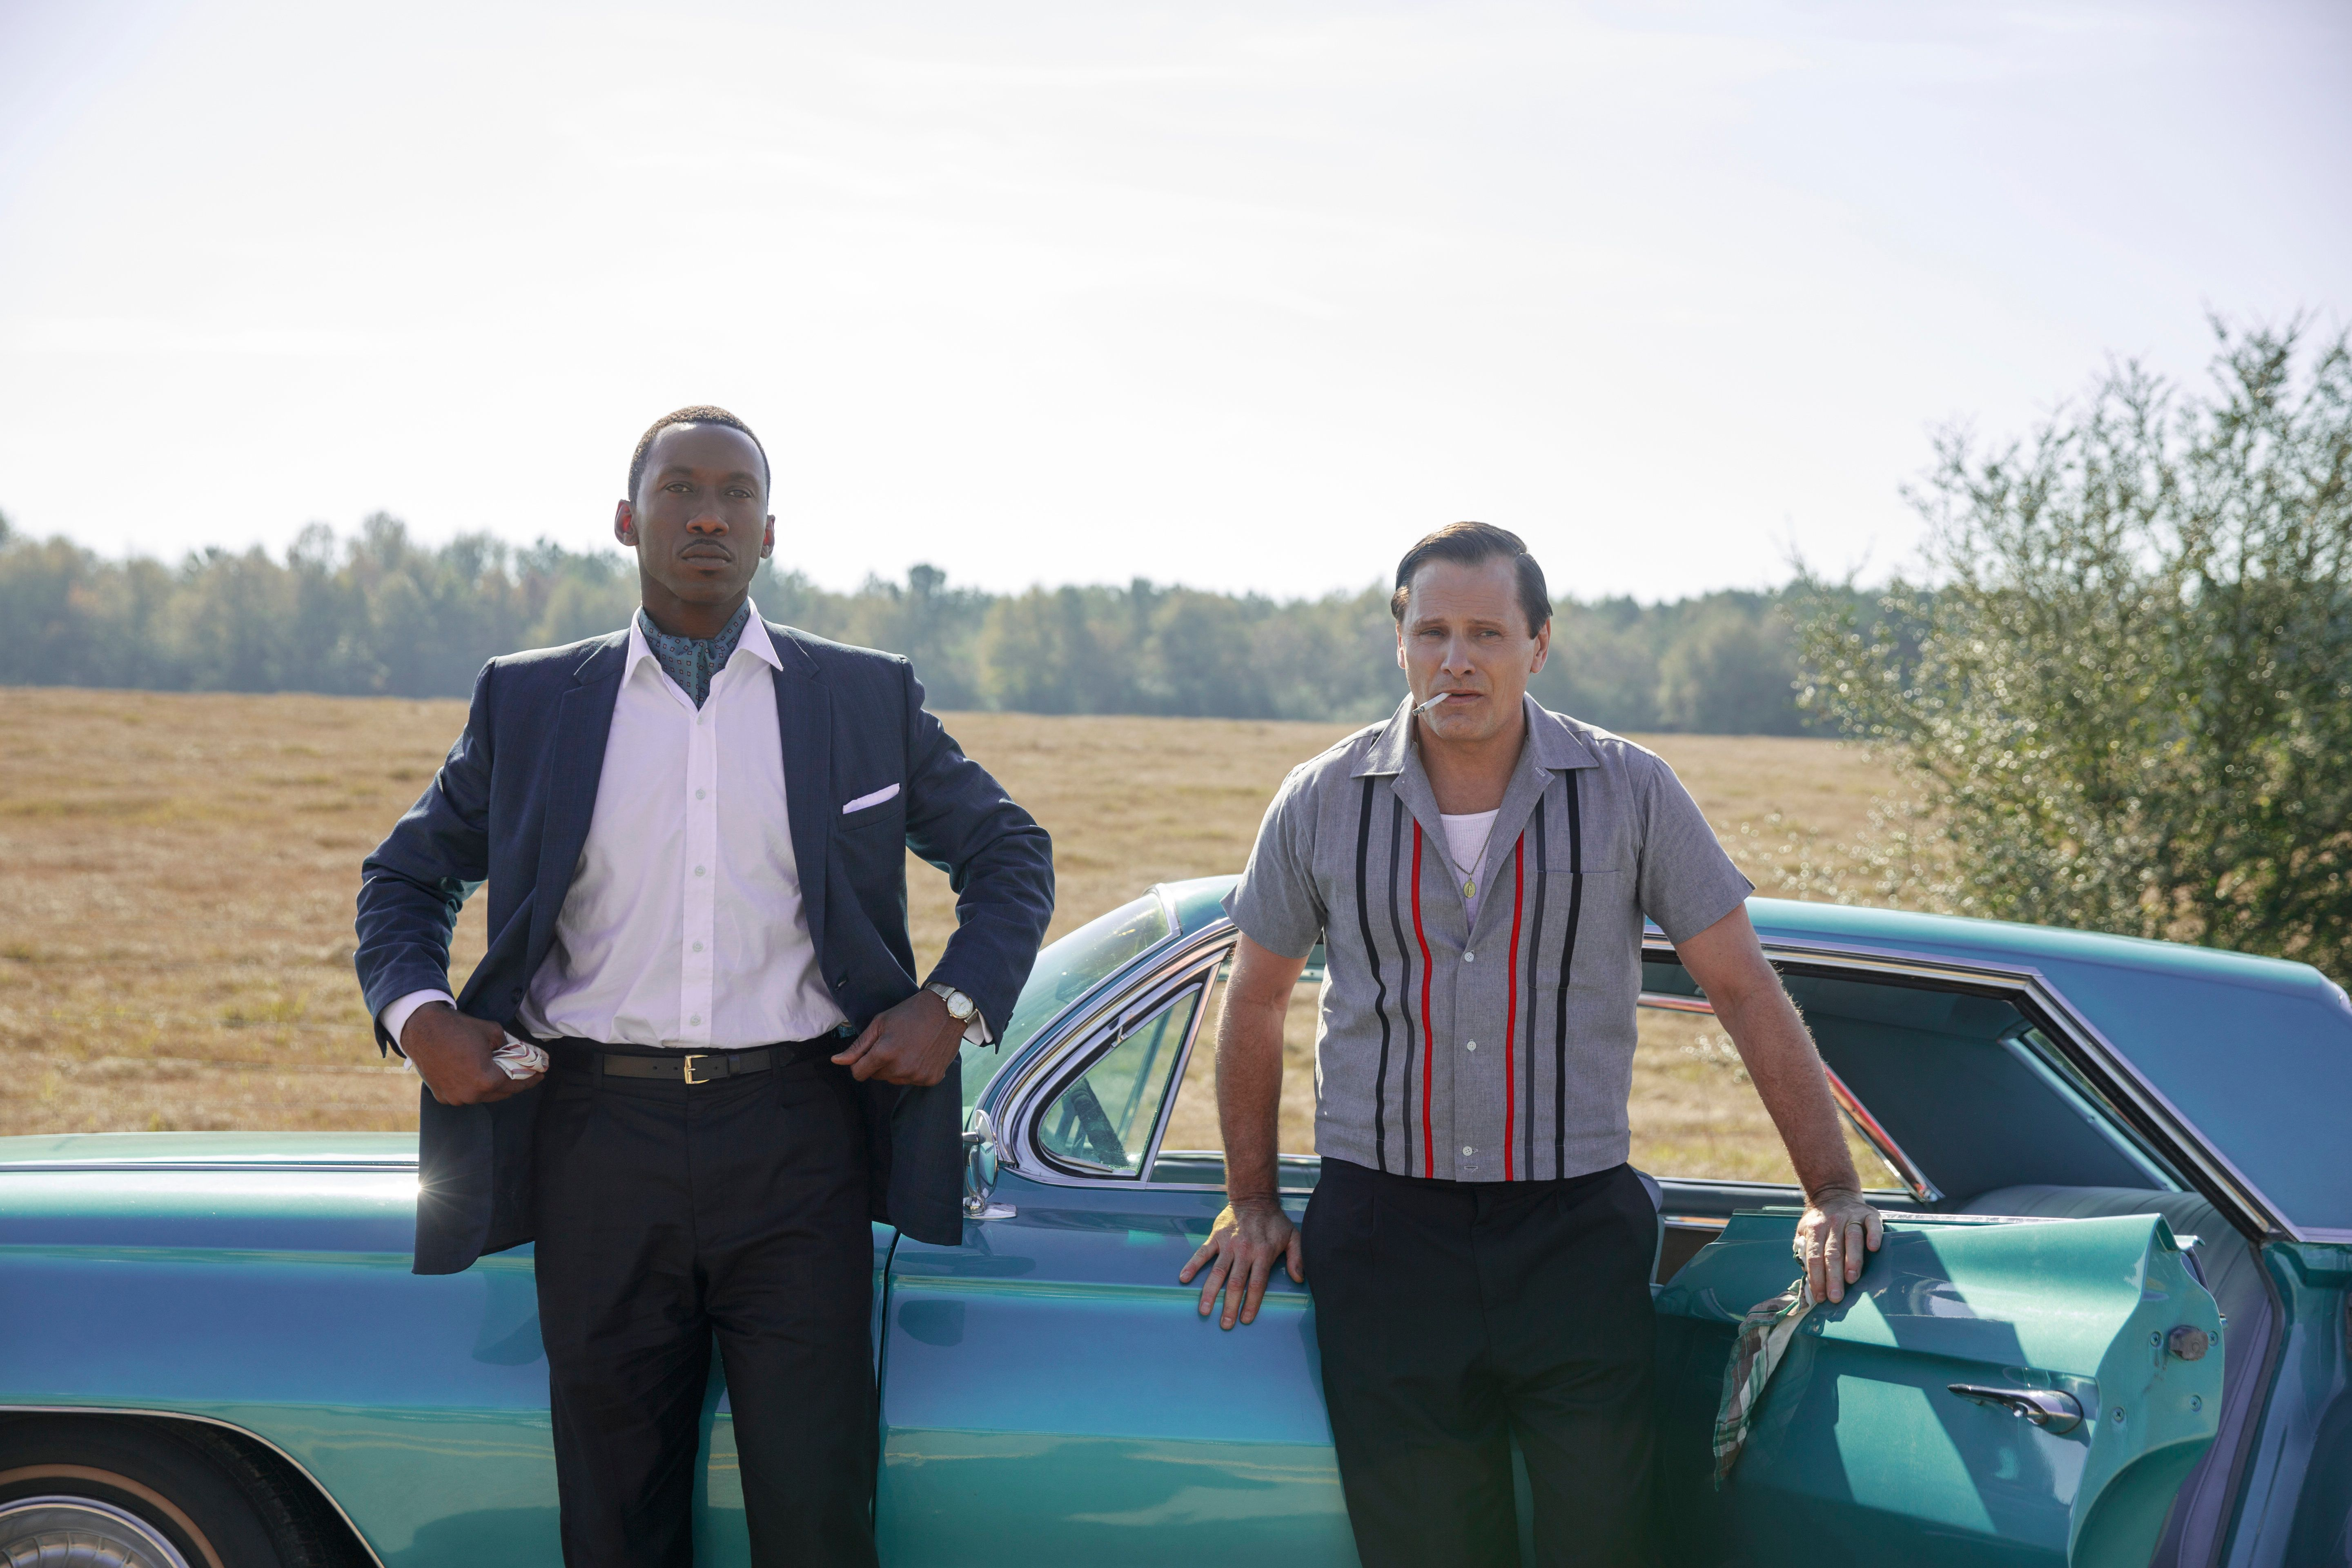 Mahershala Ali as Dr. Donald Shirley and Viggo Mortensen as Tony Vallelonga in Green Book, directed by Peter Farrelly